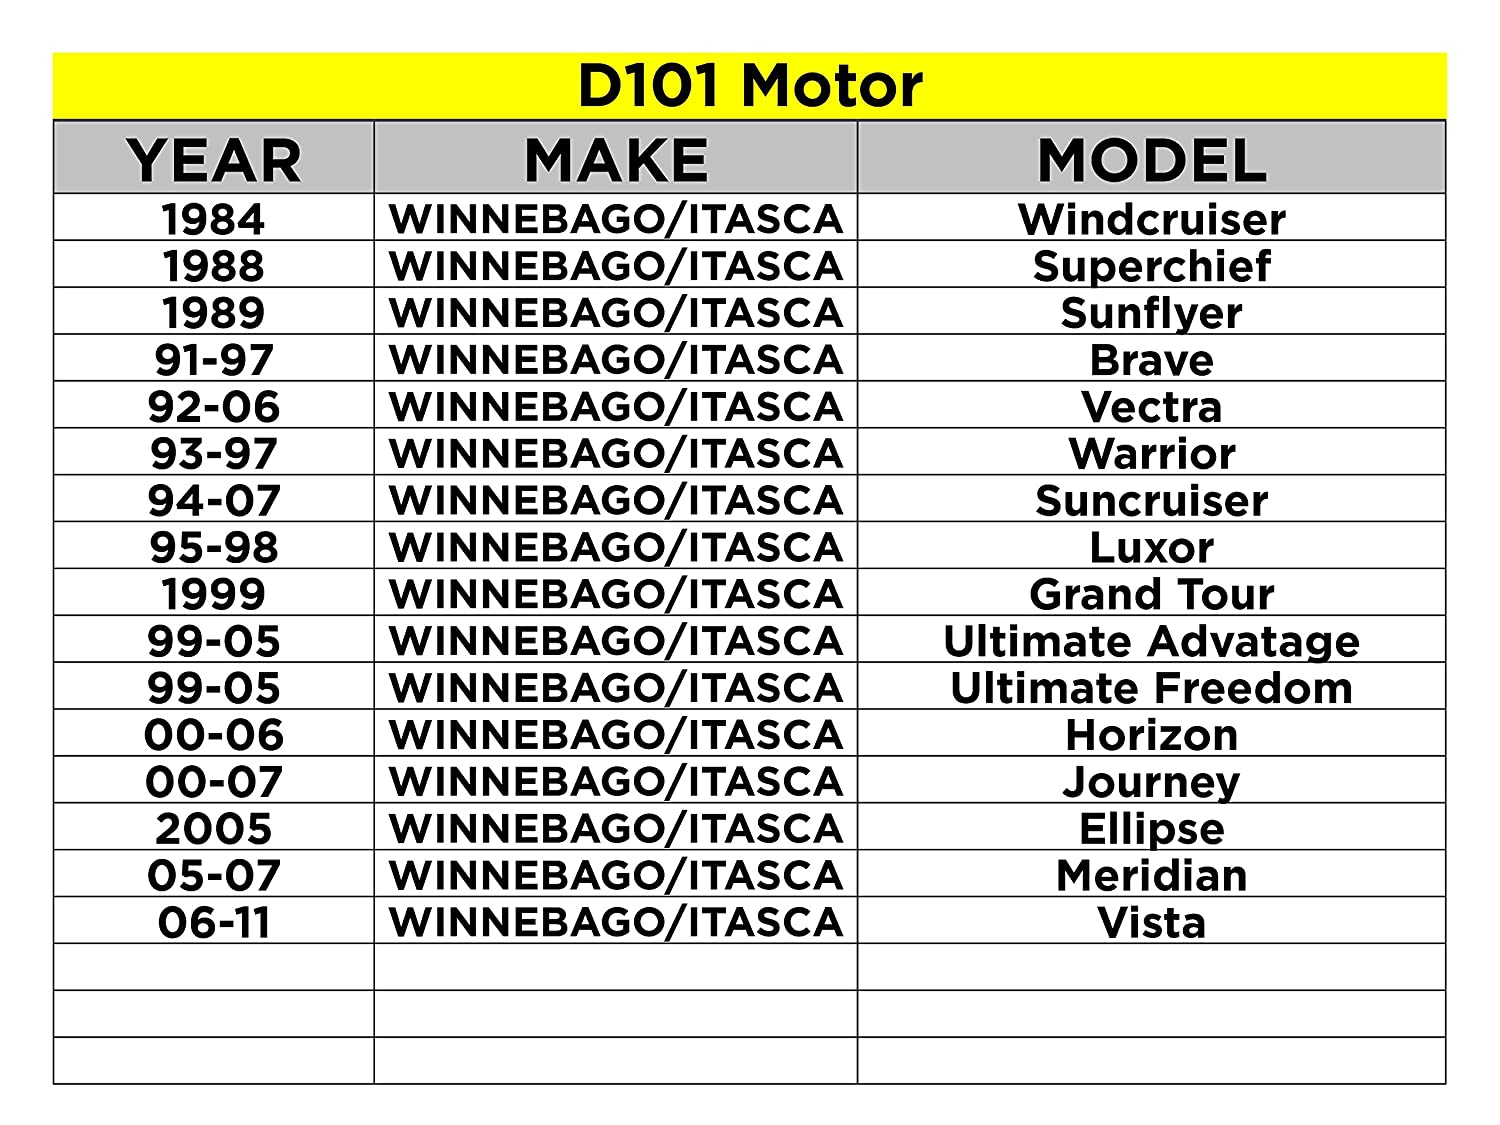 H131 Wexco Wiper Motor Wiring Diagram | Schematic Diagram on wiper motor power supply, wiper motor parts, 2005 bobcat s185 windshield wioer motor diagram, wiper motor toyota, briggs and stratton electrical diagram, wiper motor cover, ford wiper motor diagram, wiper switch diagram, wiper washer motor, wwf wiper motor diagram, windshield wiper motor diagram, circuit diagram, solenoid switch diagram, vacuum wipers diagram, gm wiper motor diagram, wiper motor cable, wiper motor relay diagram, wiper wiring hi-low, wiper motor wire, front bumper assembly diagram,